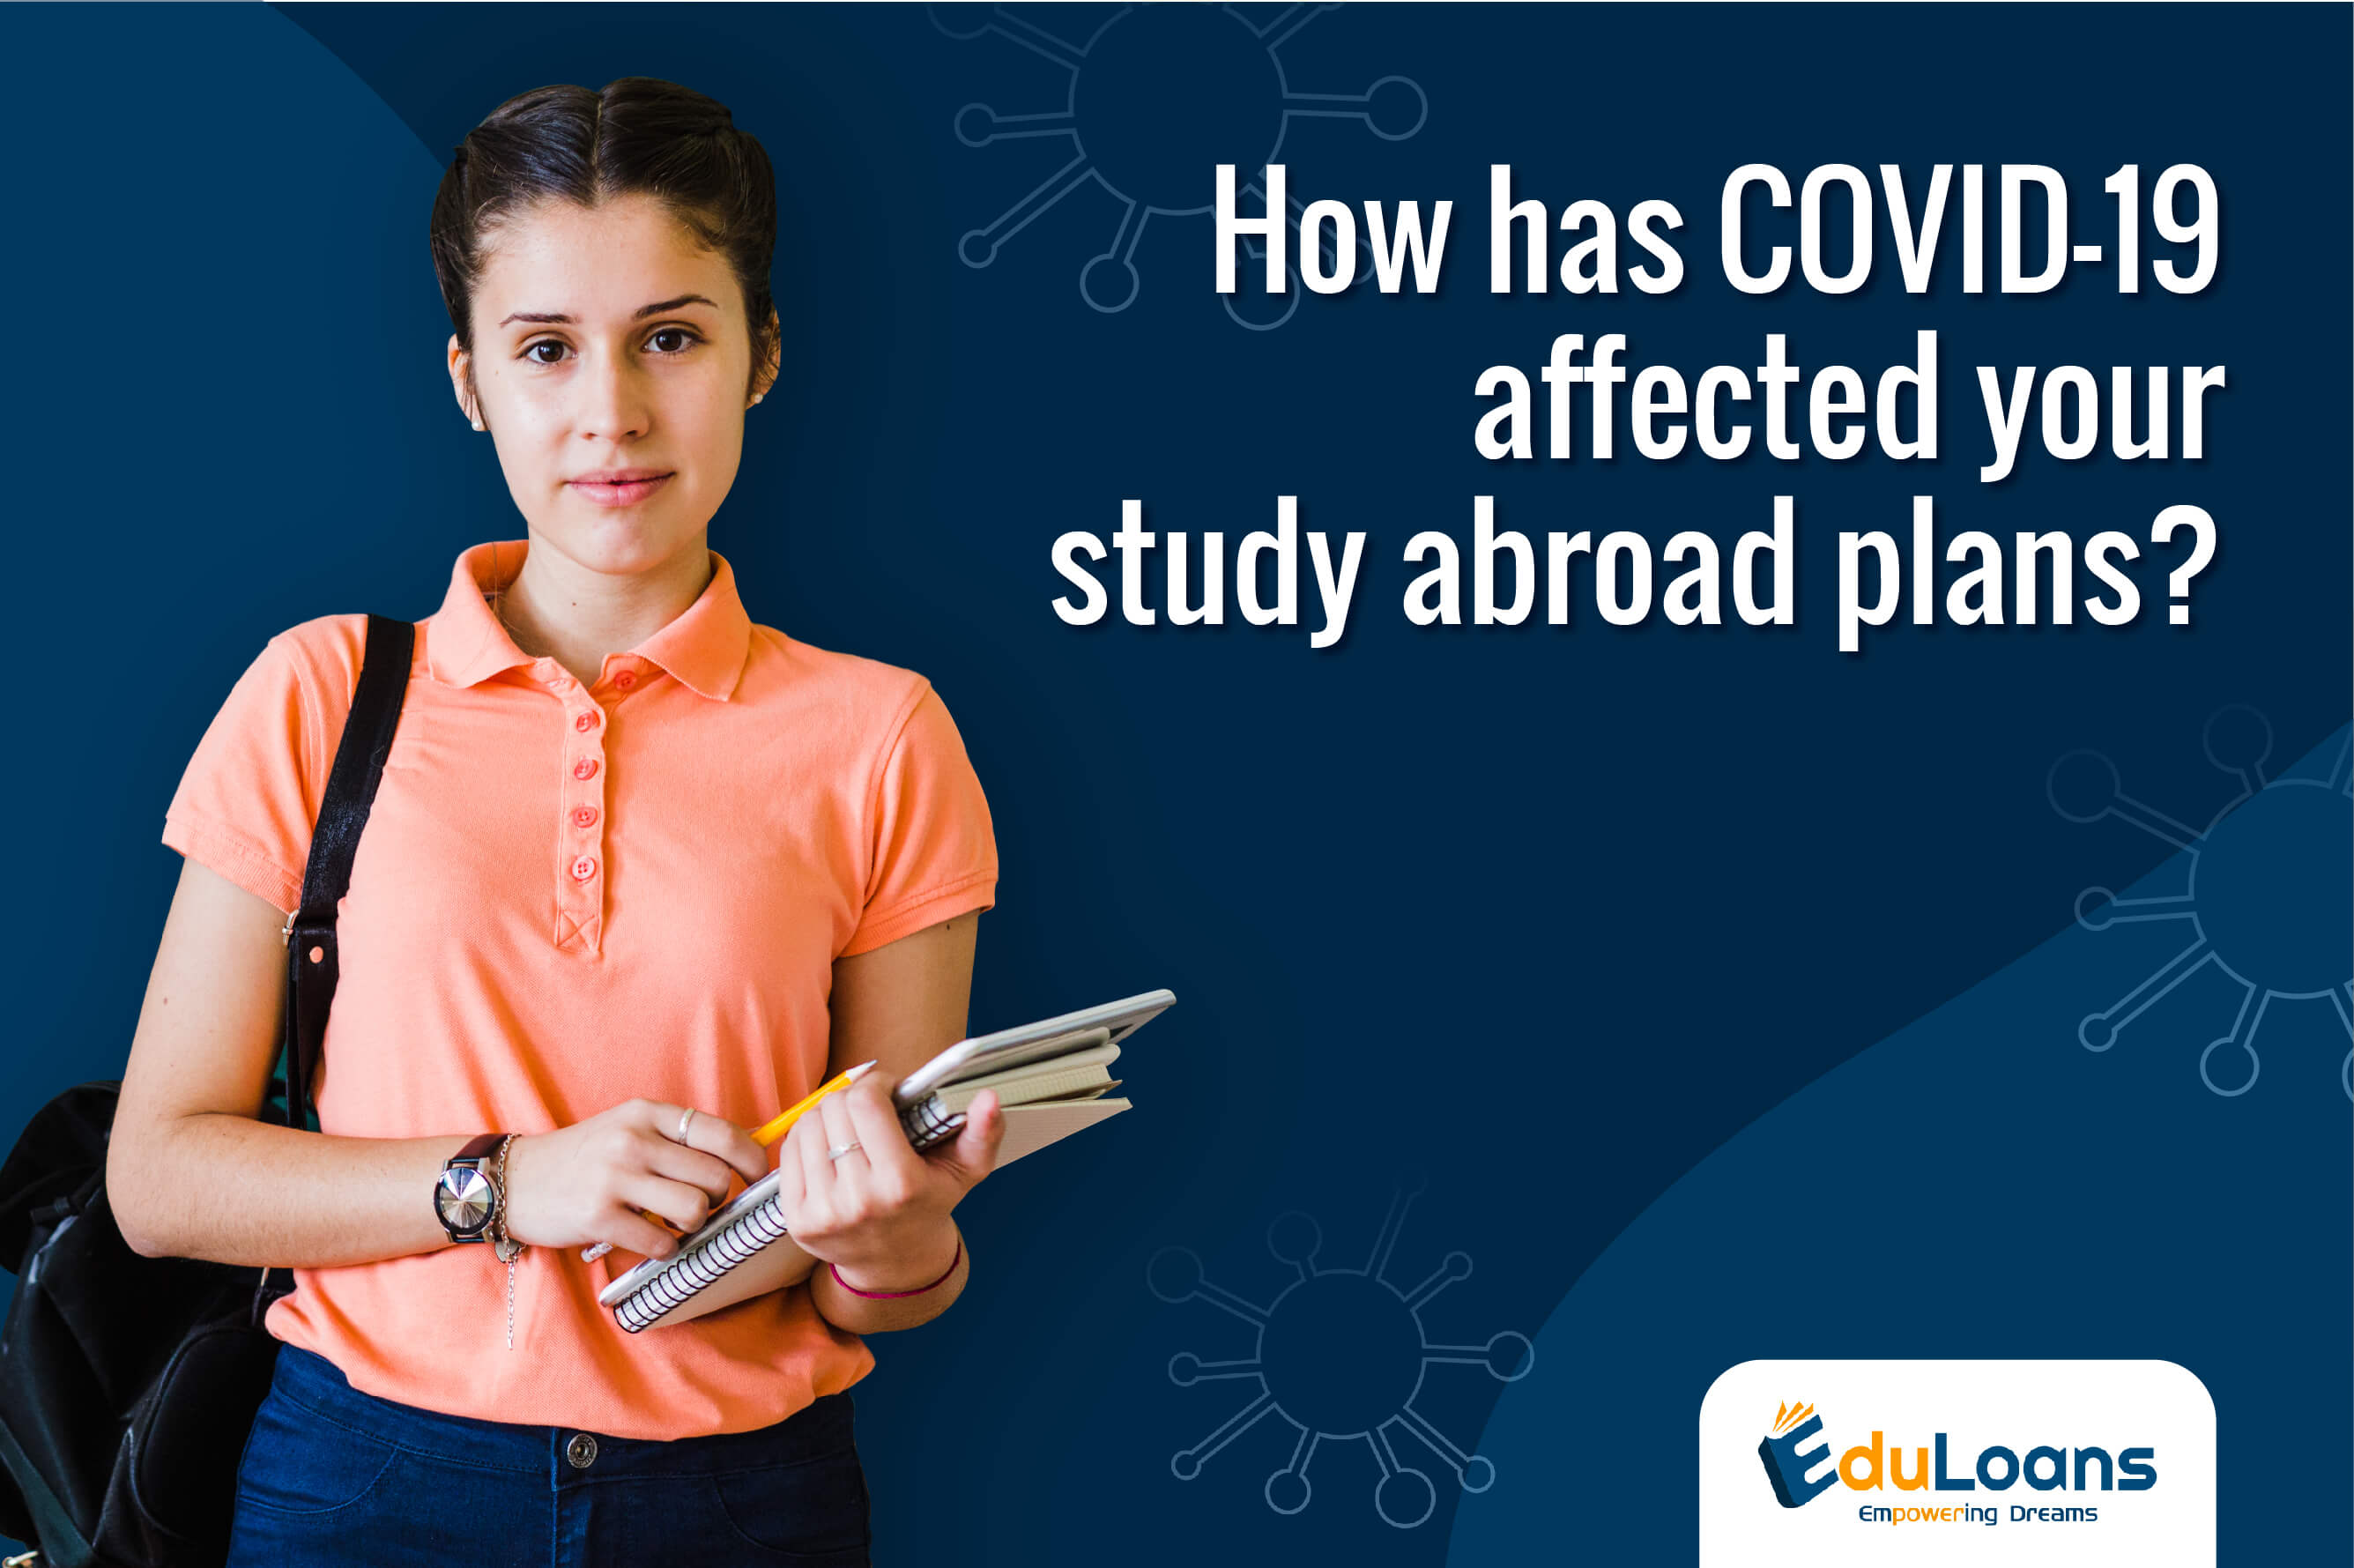 How has COVID-19 affected your study abroad plans?